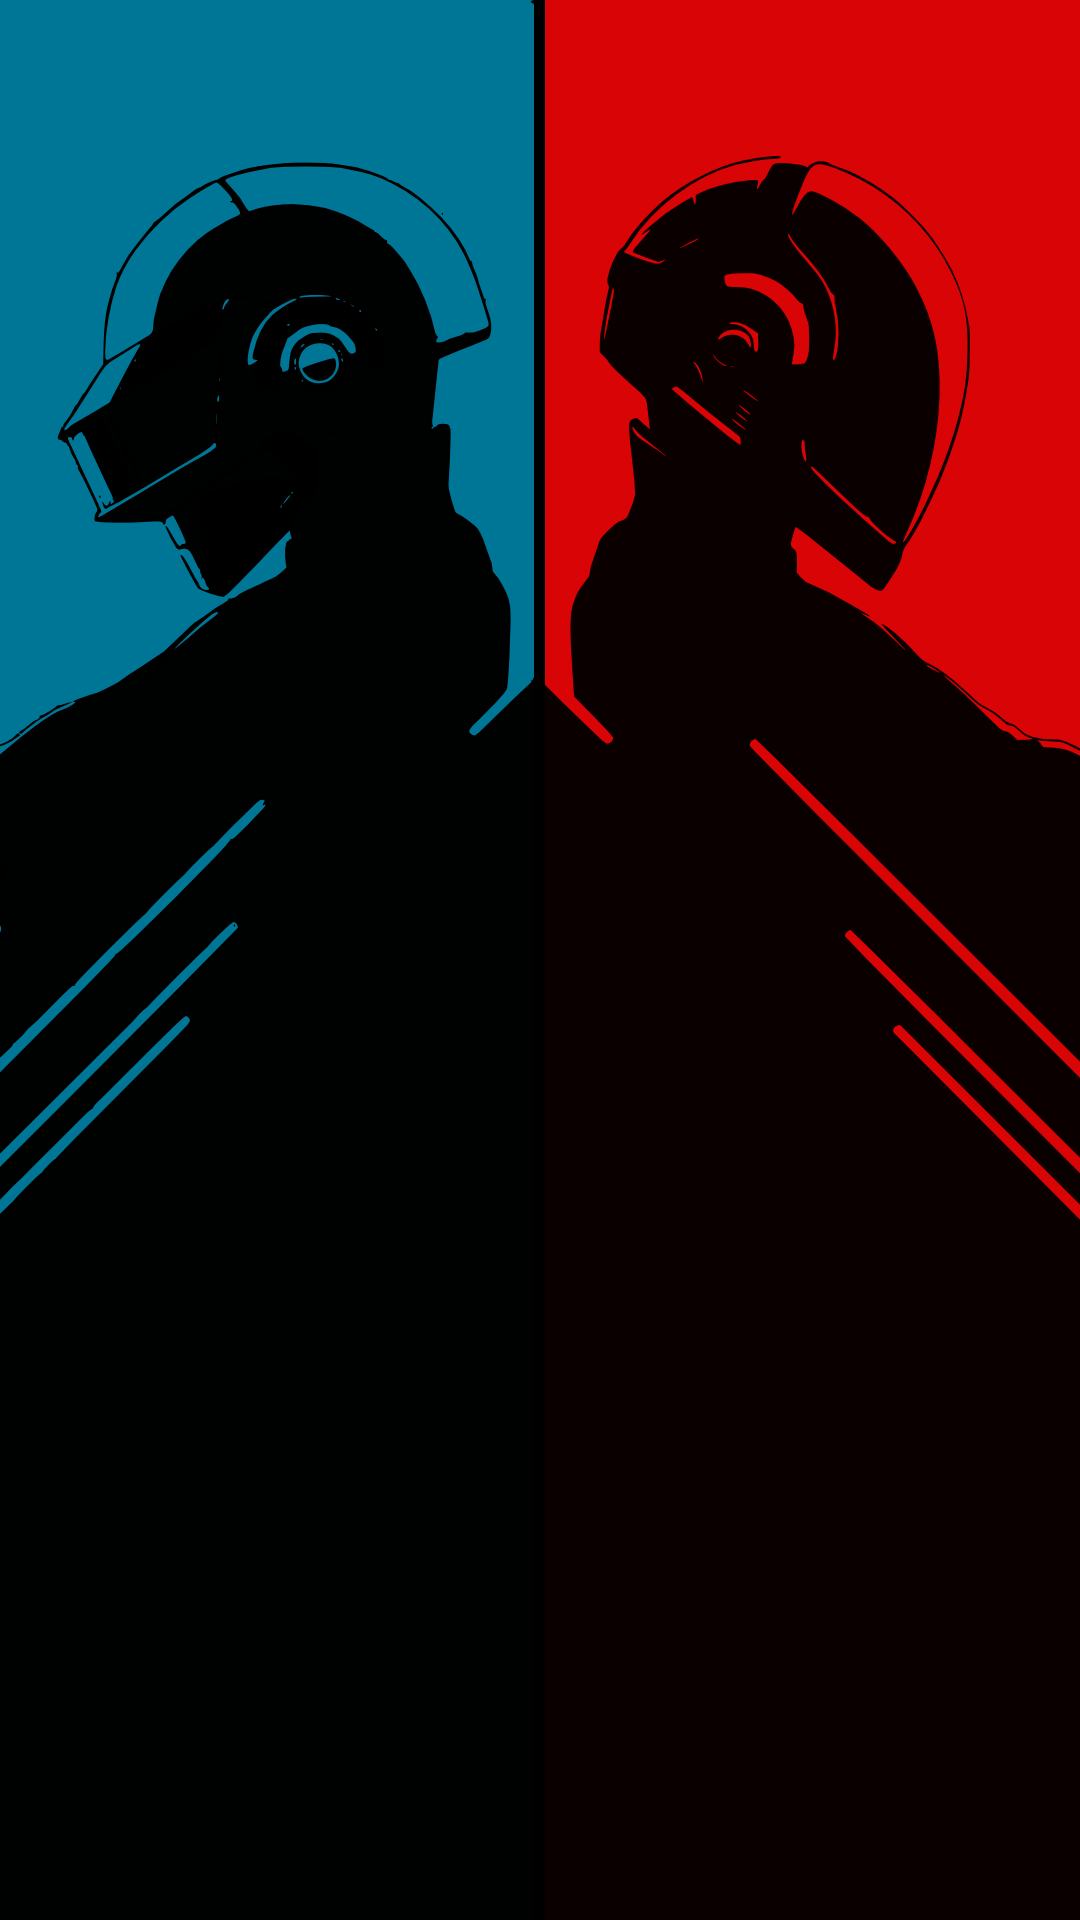 iPhone 6 plus wallpaper 6 1080x1920